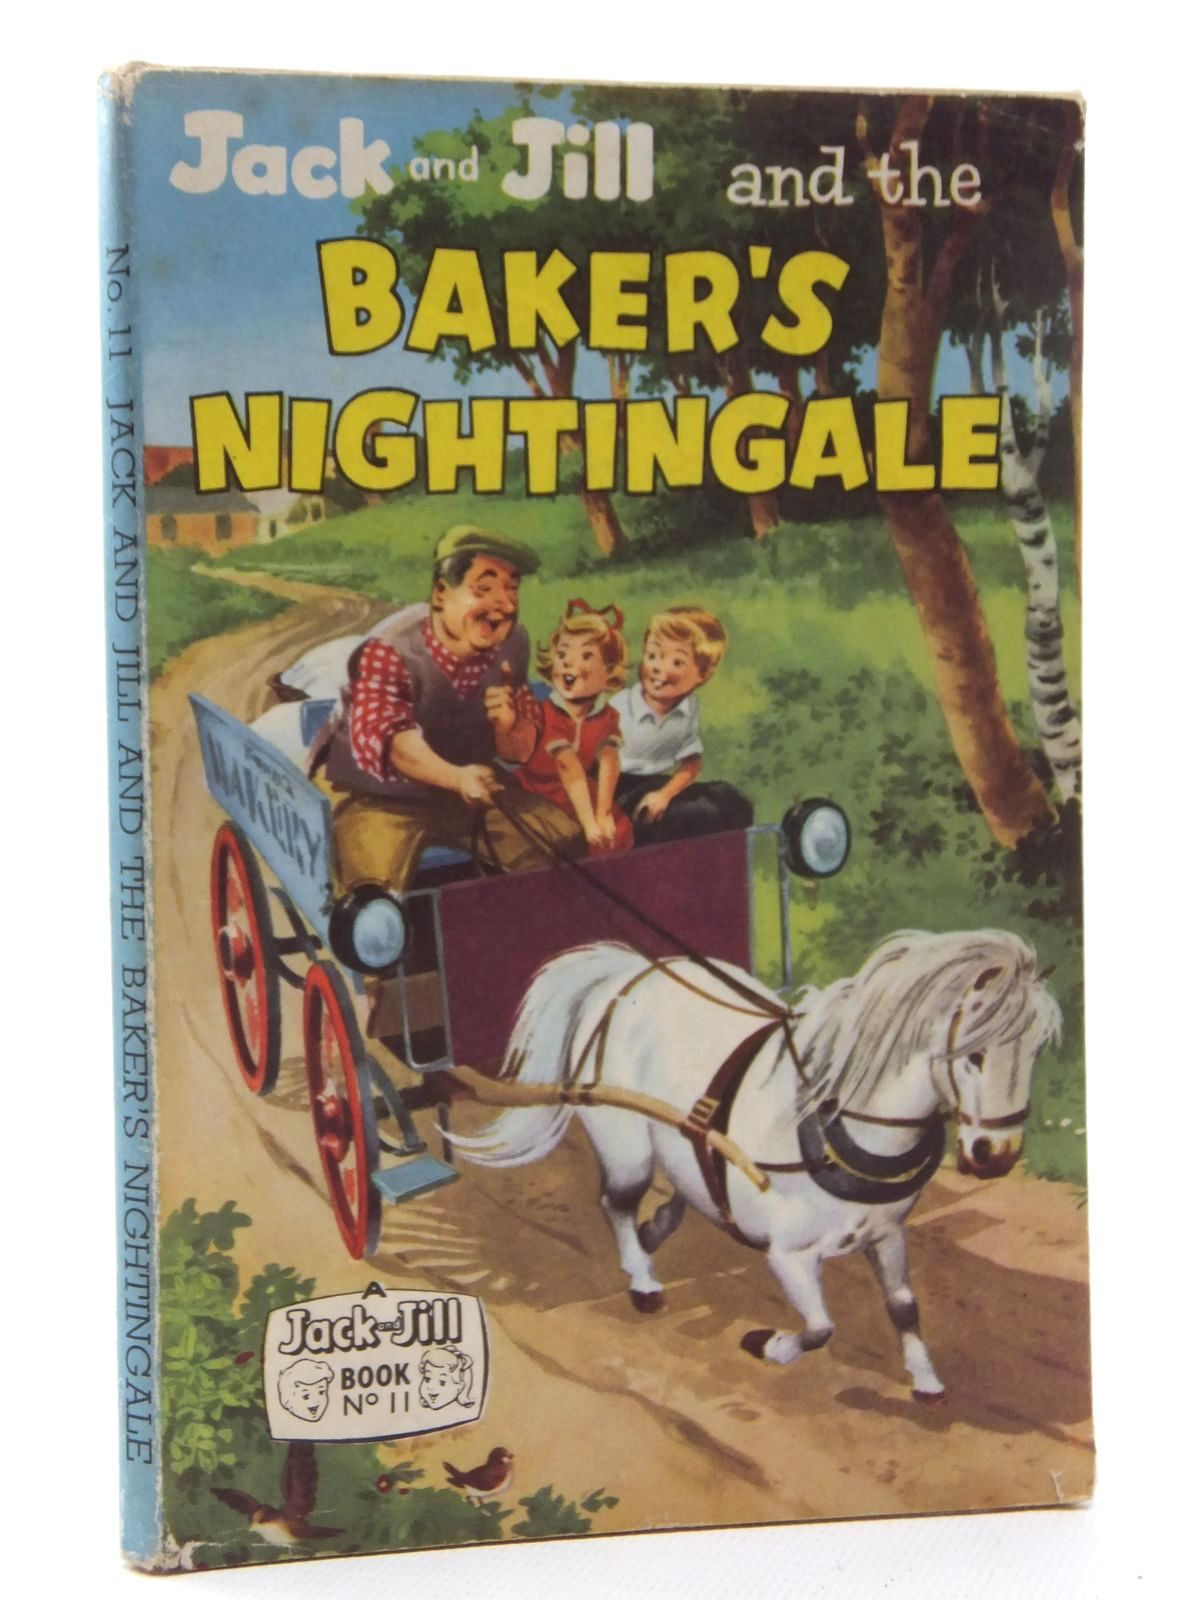 Photo of JACK AND JILL AND THE BAKER'S NIGHTINGALE published by Fleetway Publications Ltd. (STOCK CODE: 1317108)  for sale by Stella & Rose's Books